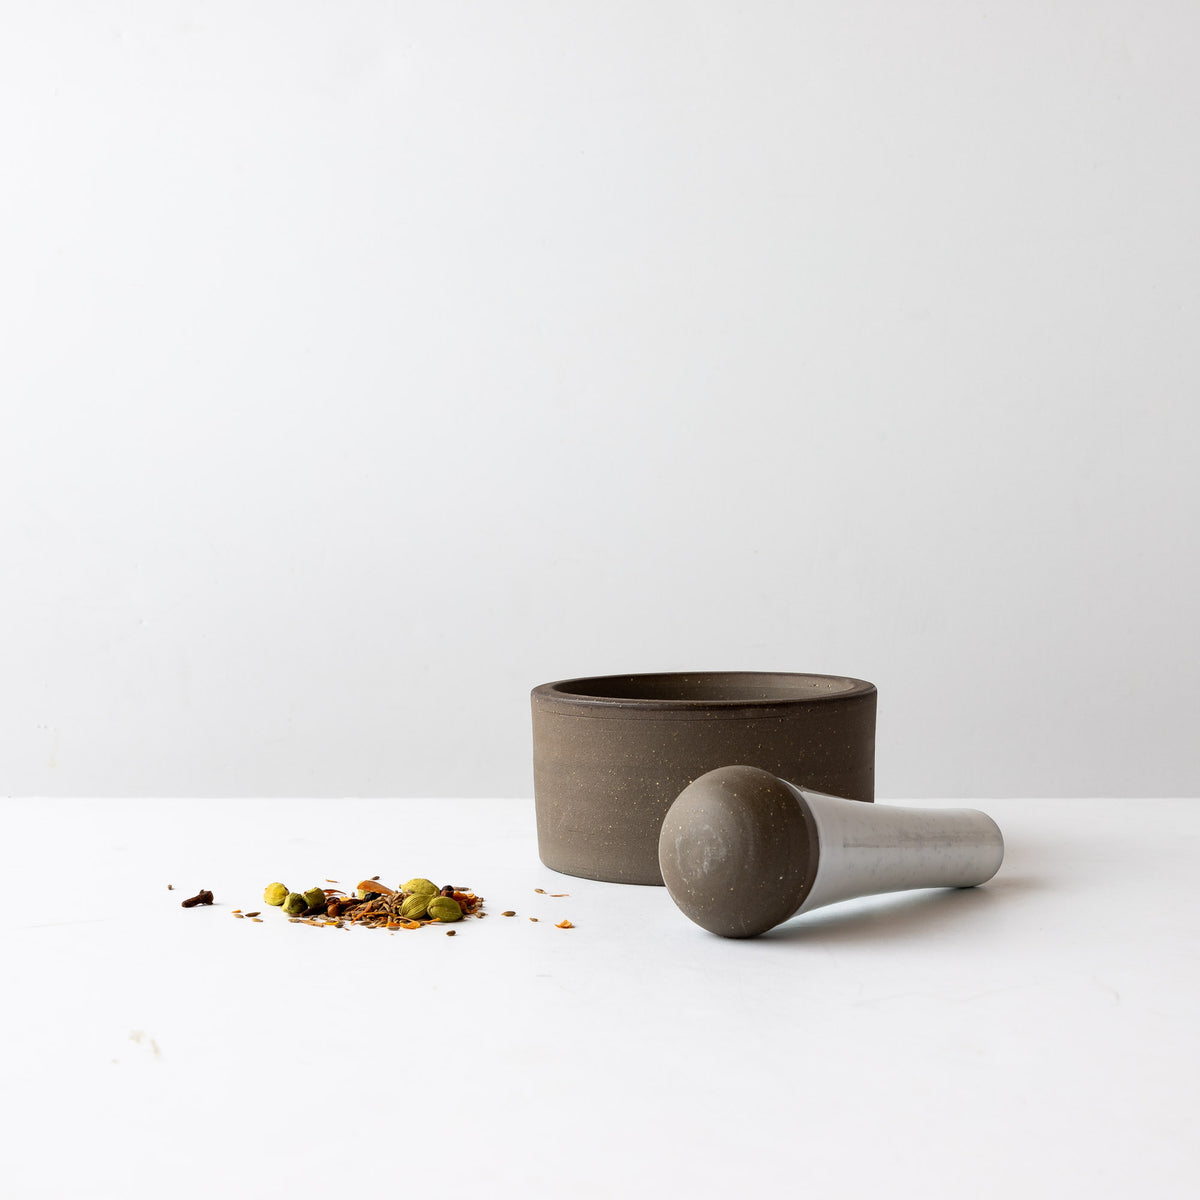 Handmade Contemporary Ceramic Mortar & Pestle Set - Shown With Spices - Sold by Chic & Basta